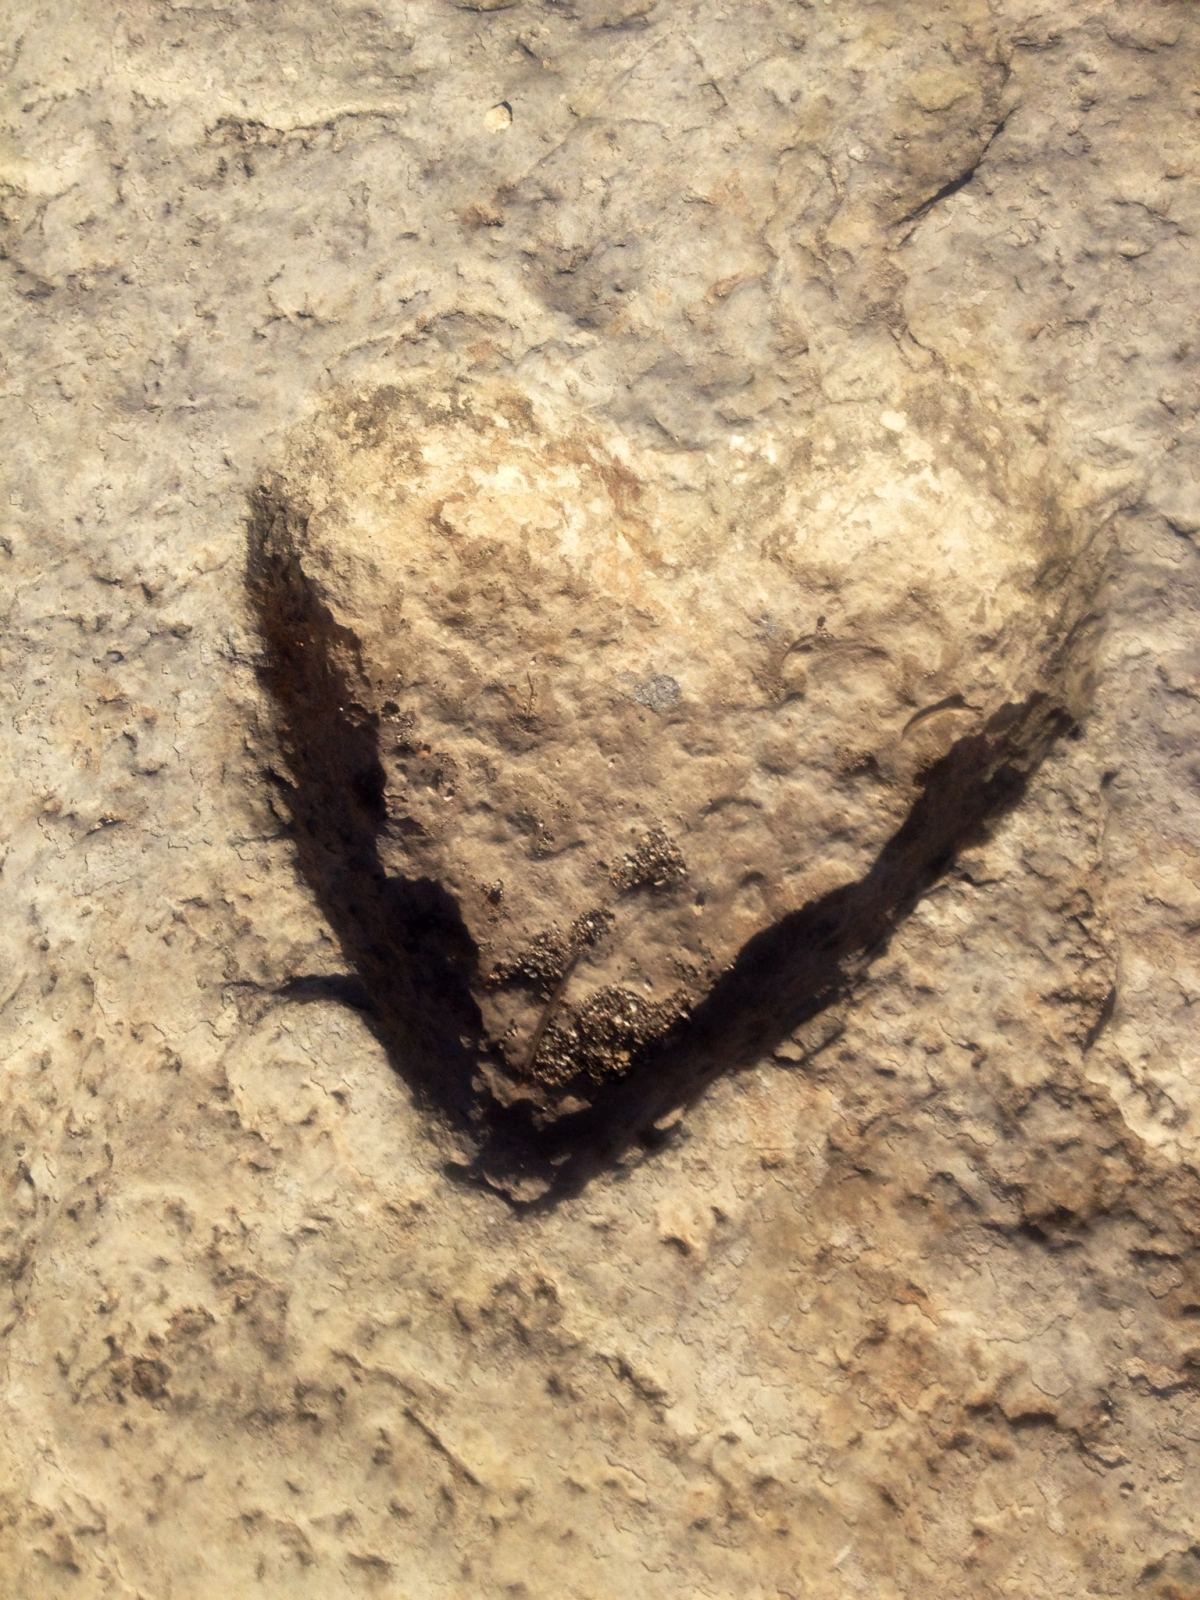 heart fossil